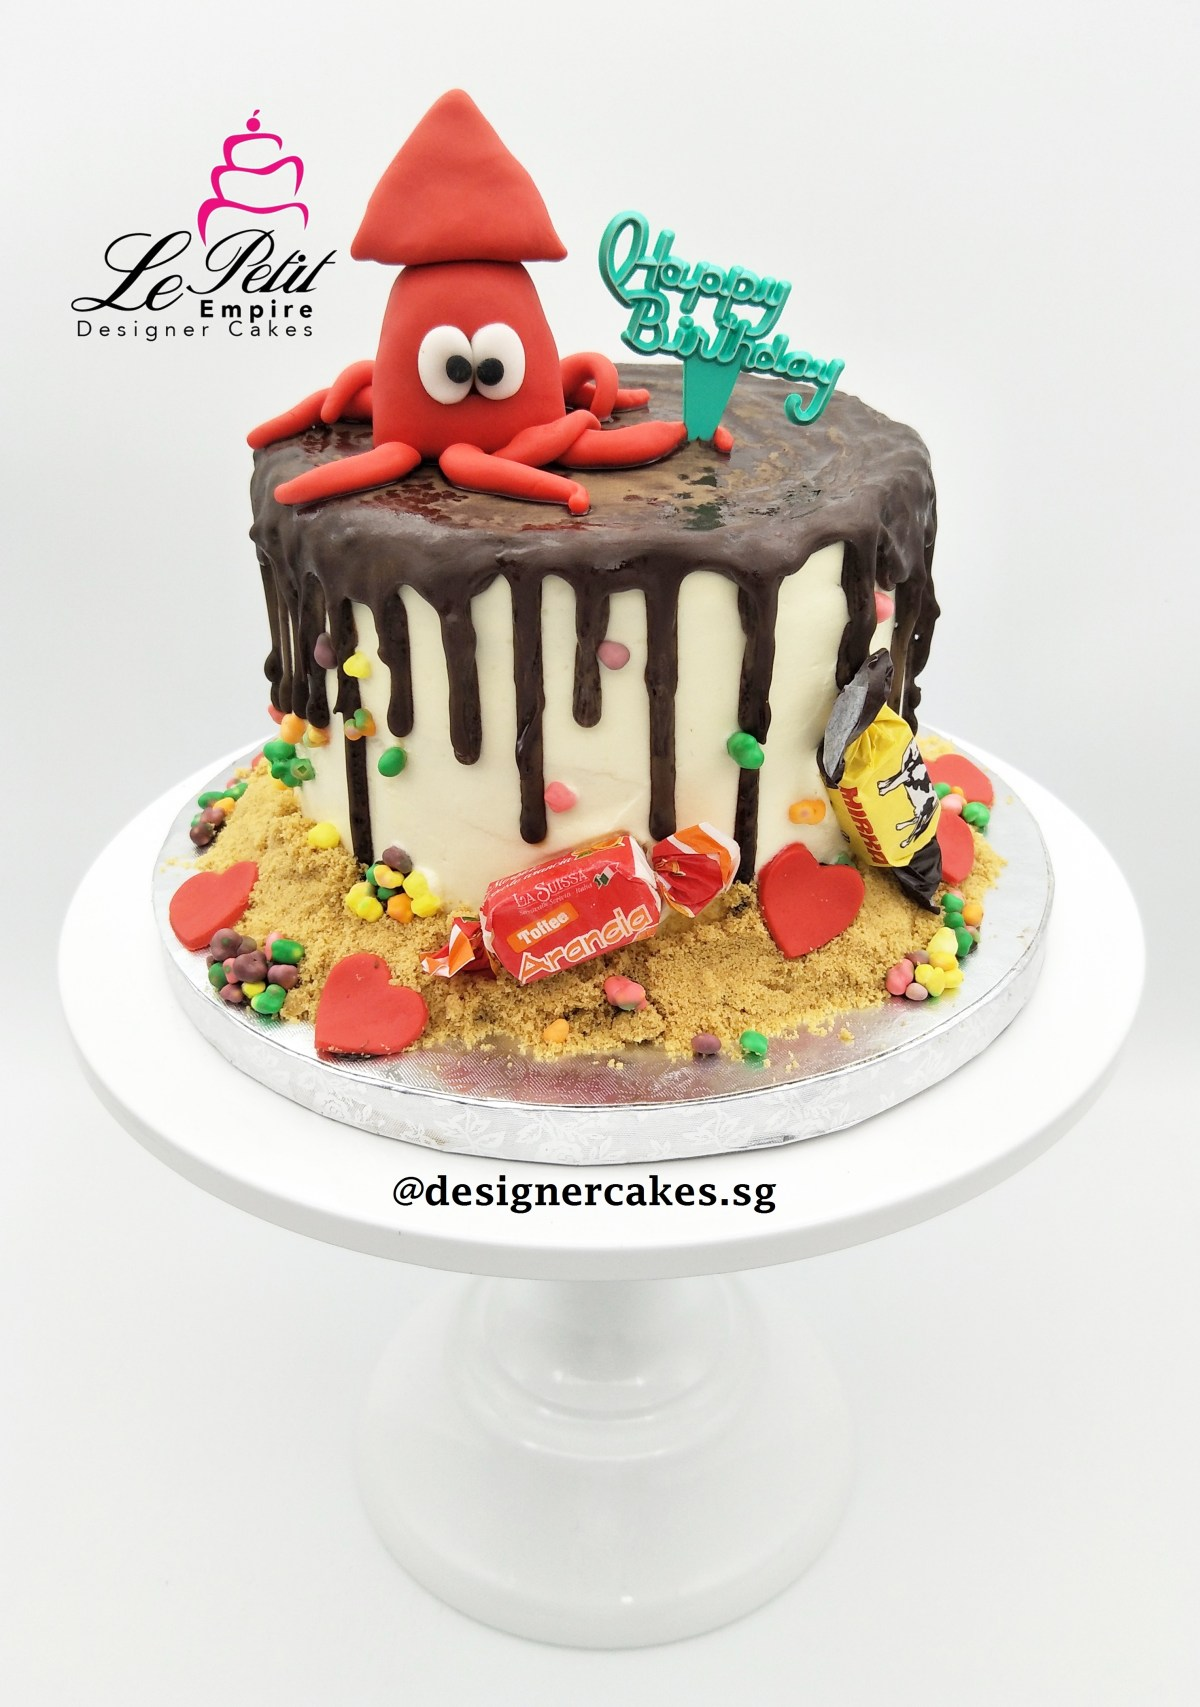 Drip Cake - Themed drip cake with fondant sotong, candies and sand. Singapore Customized Cakes